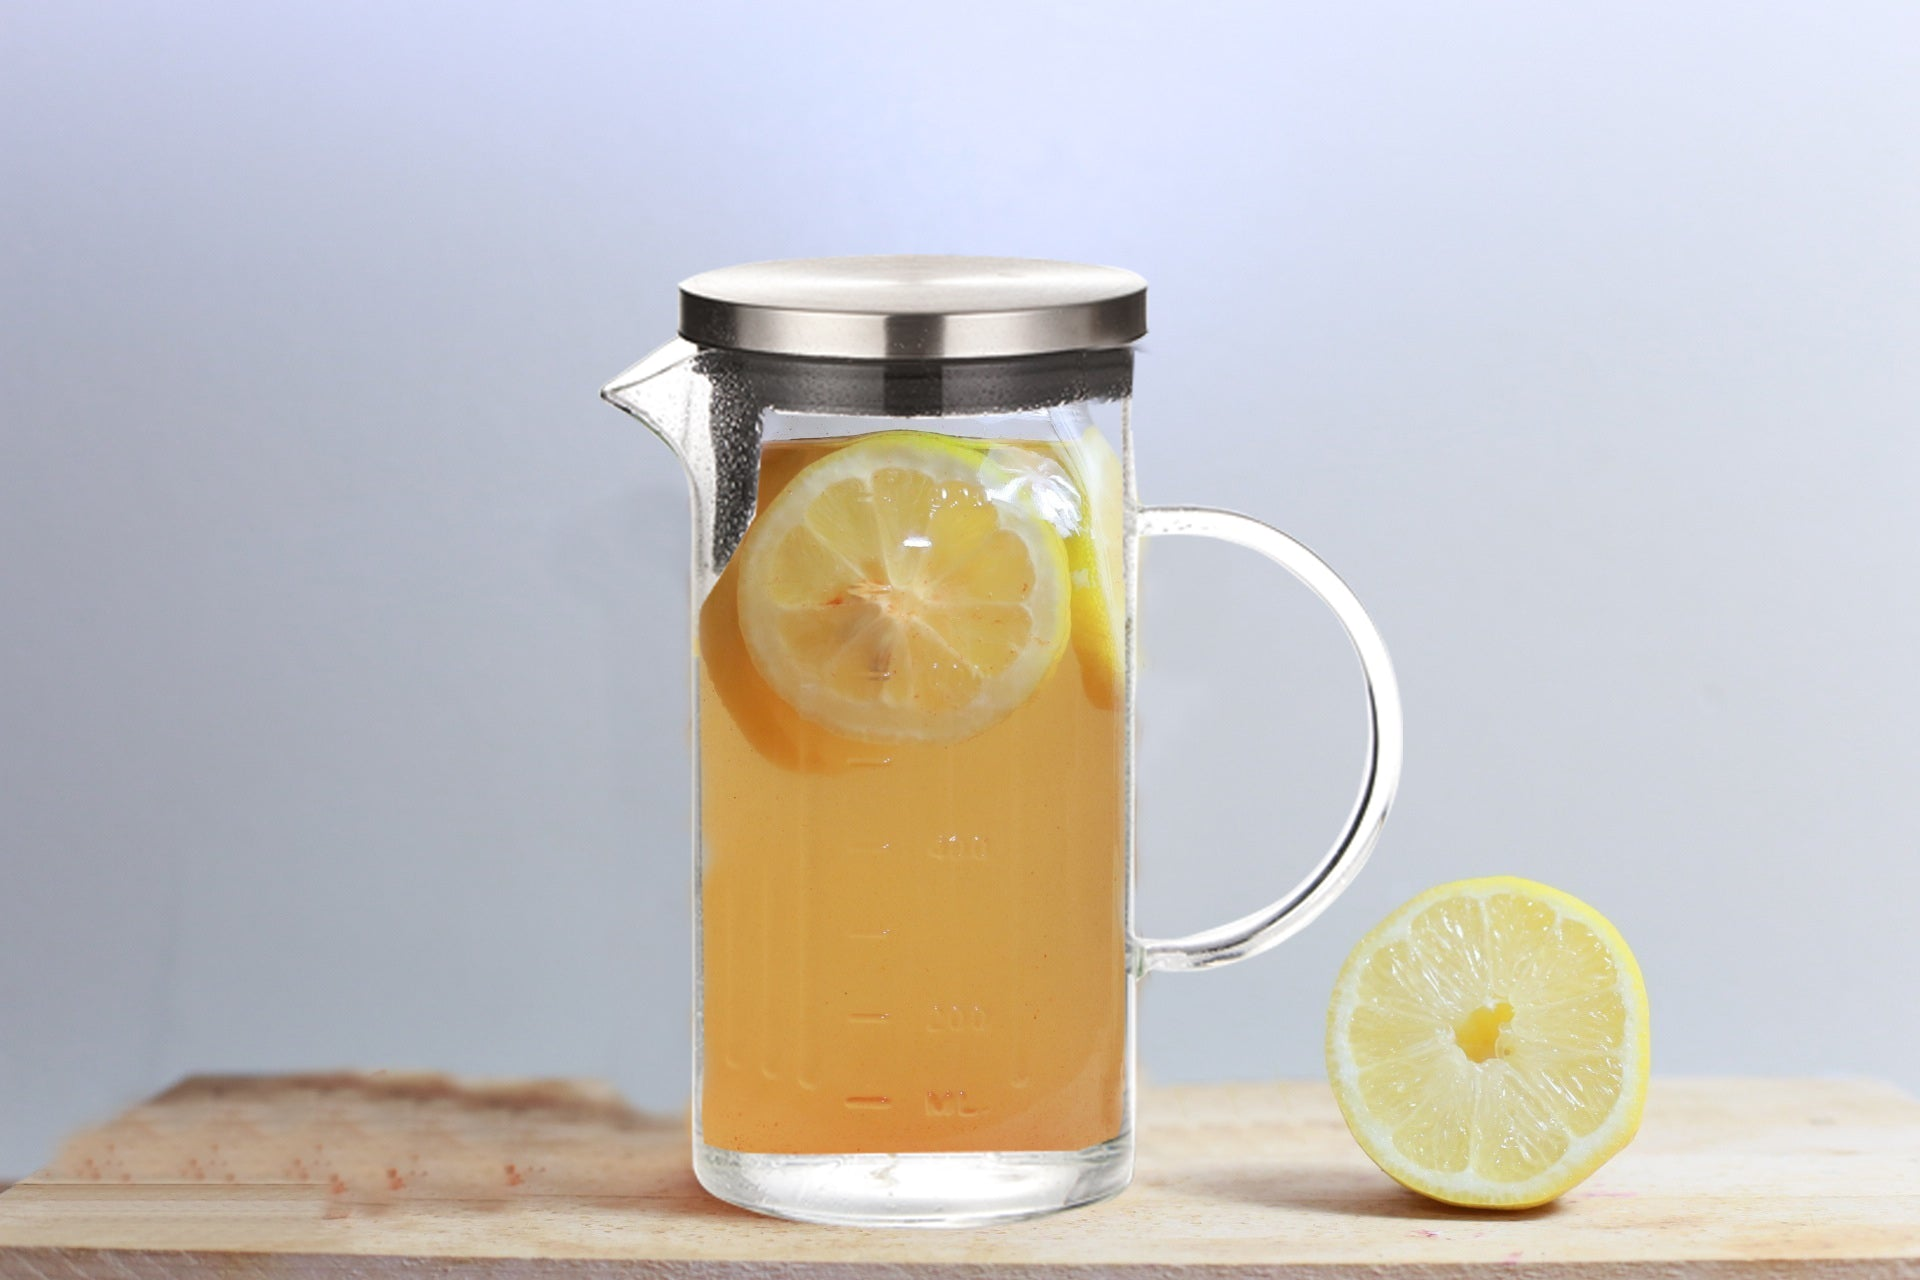 Chefoh Glass Pitcher with Lid - Unique Pattern Cold Water Jug - 1000 ML perfect for Homemade Iced Tea and Juice